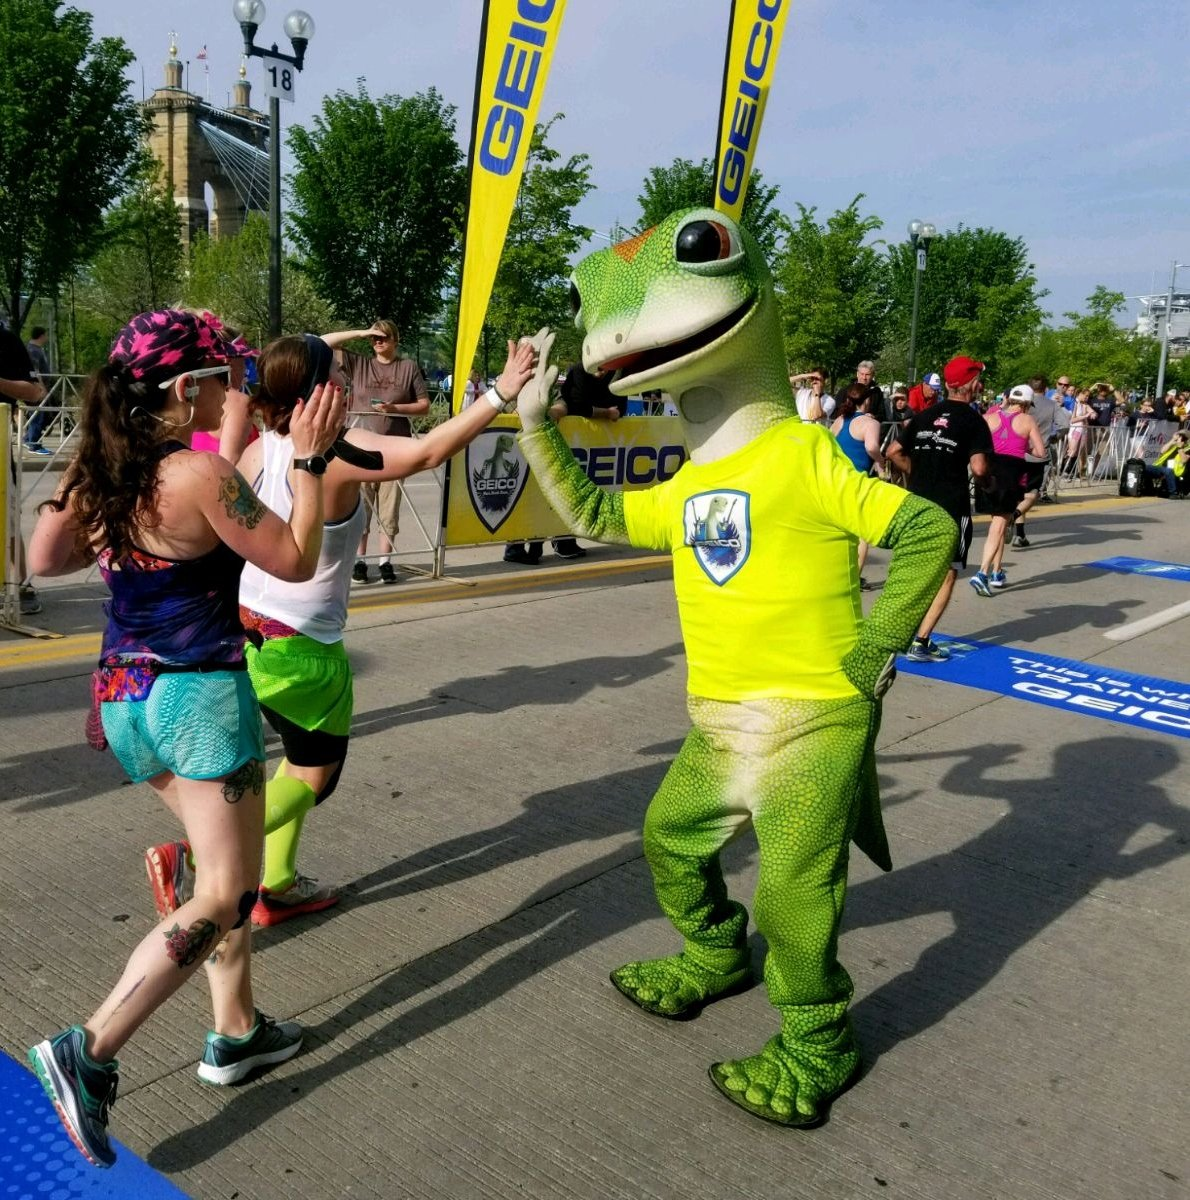 Conquering the hills of the @AlaskaAir @BaytoBreakers might be hard, but saving 15% or more on your car insurance could be easy! Stop by the @GEICO booth at the @Orig3n Orig3n Health & Wellness Expo for your chance to win a free prize!